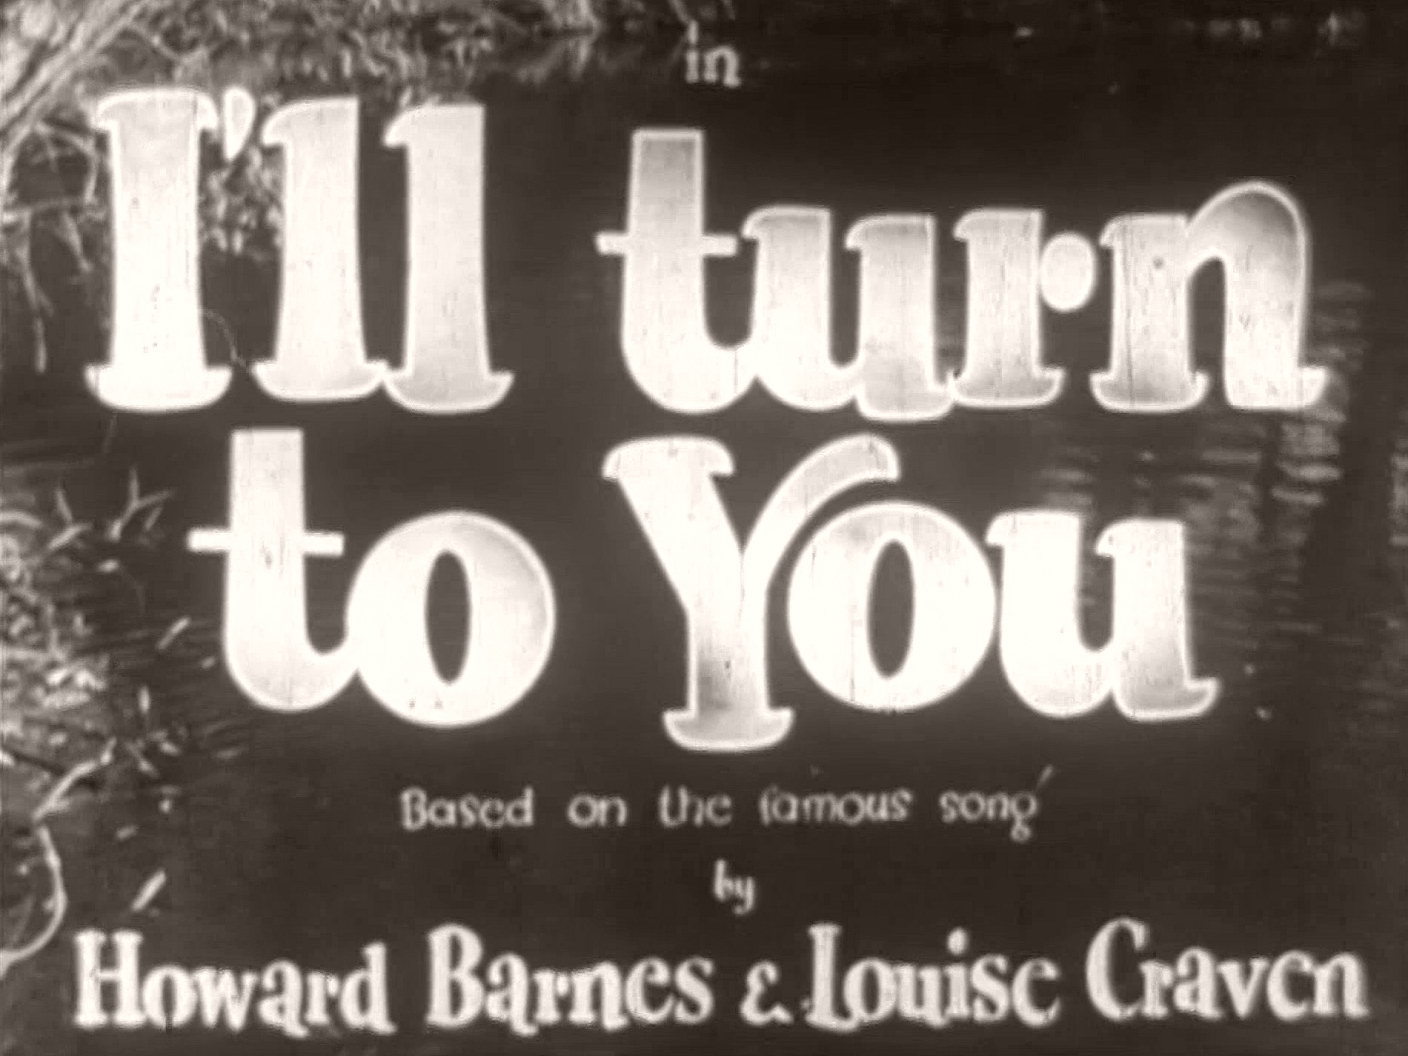 Main title from I'll Turn to You (1946) (3). Based on the story by Howard Barnes and Louise Craven